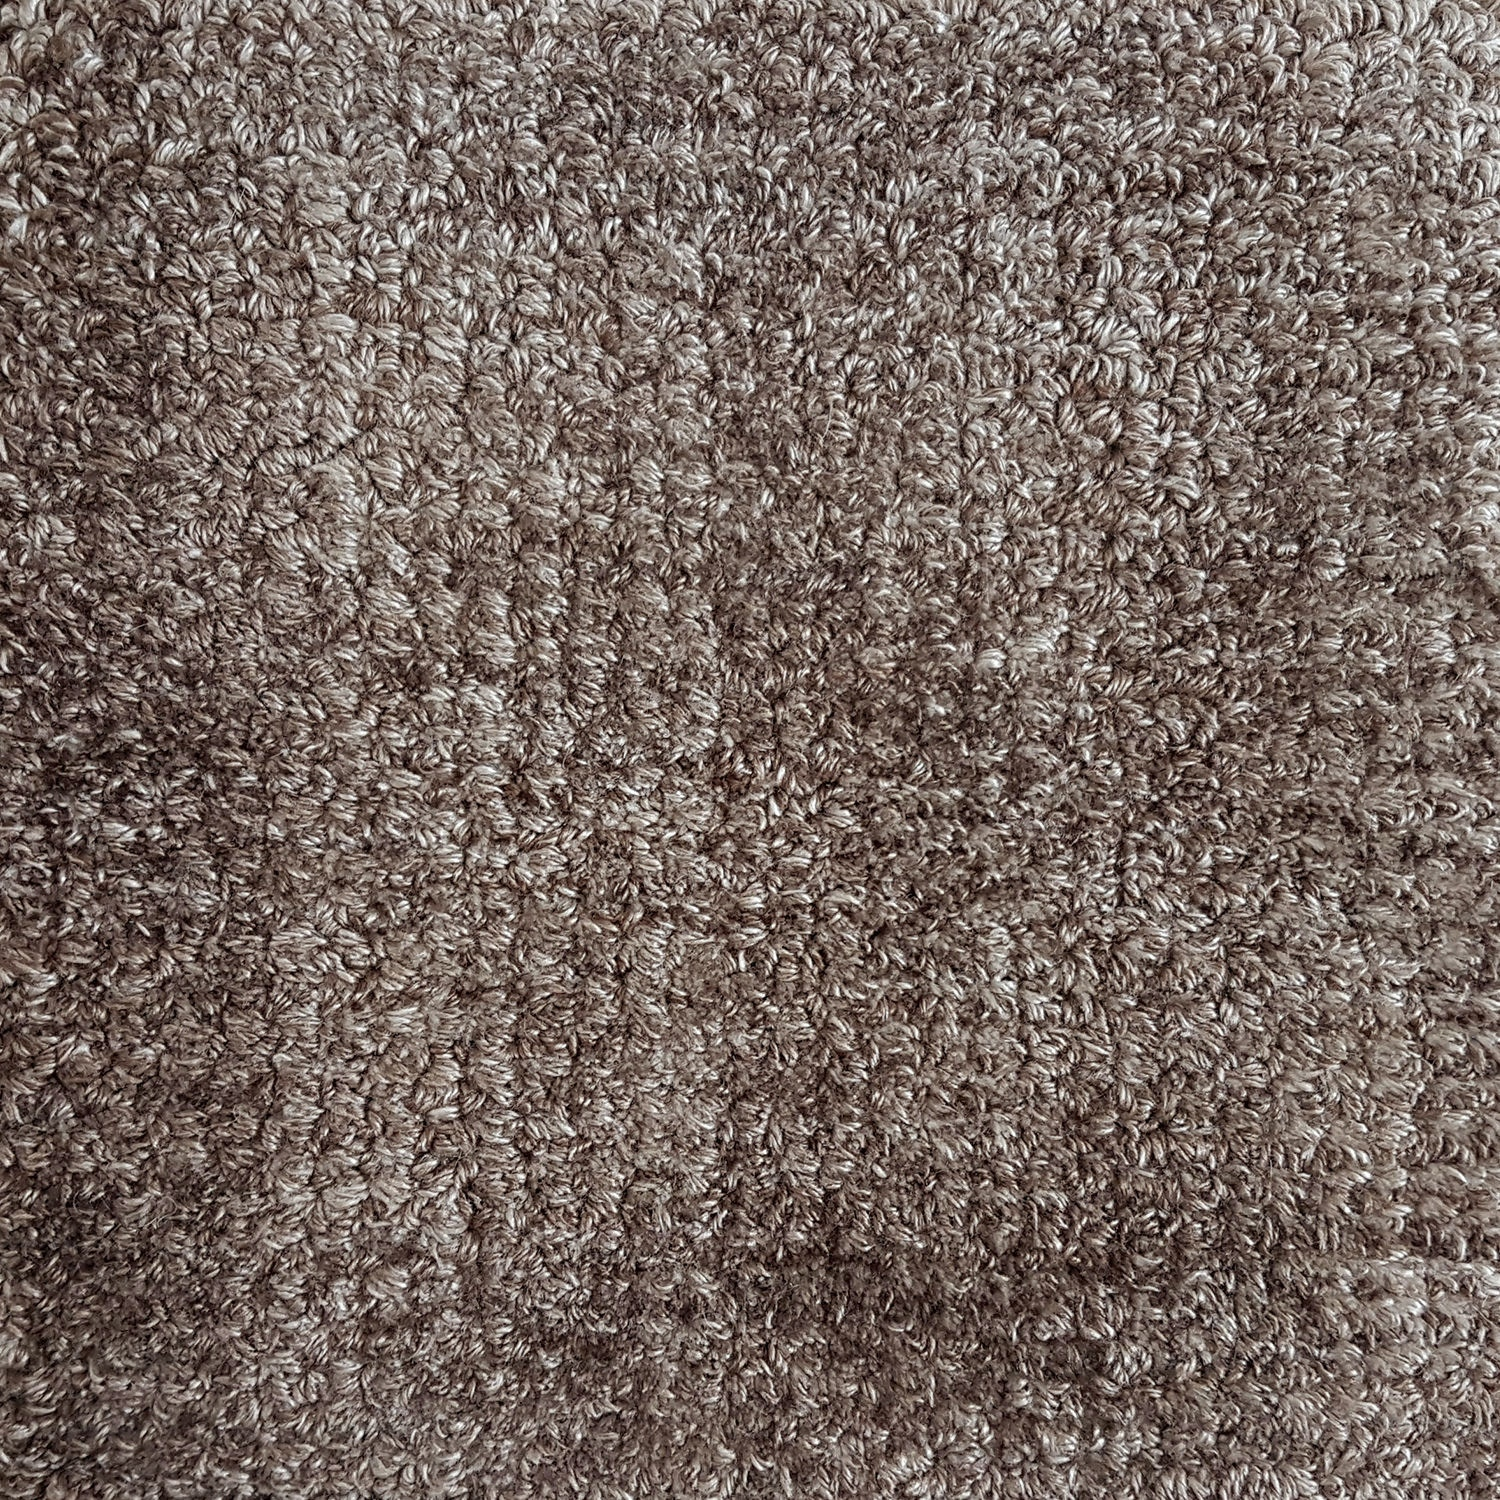 Brunschwig Carpet V12-8195/Sp.Brown CB-102202.BROWN.0